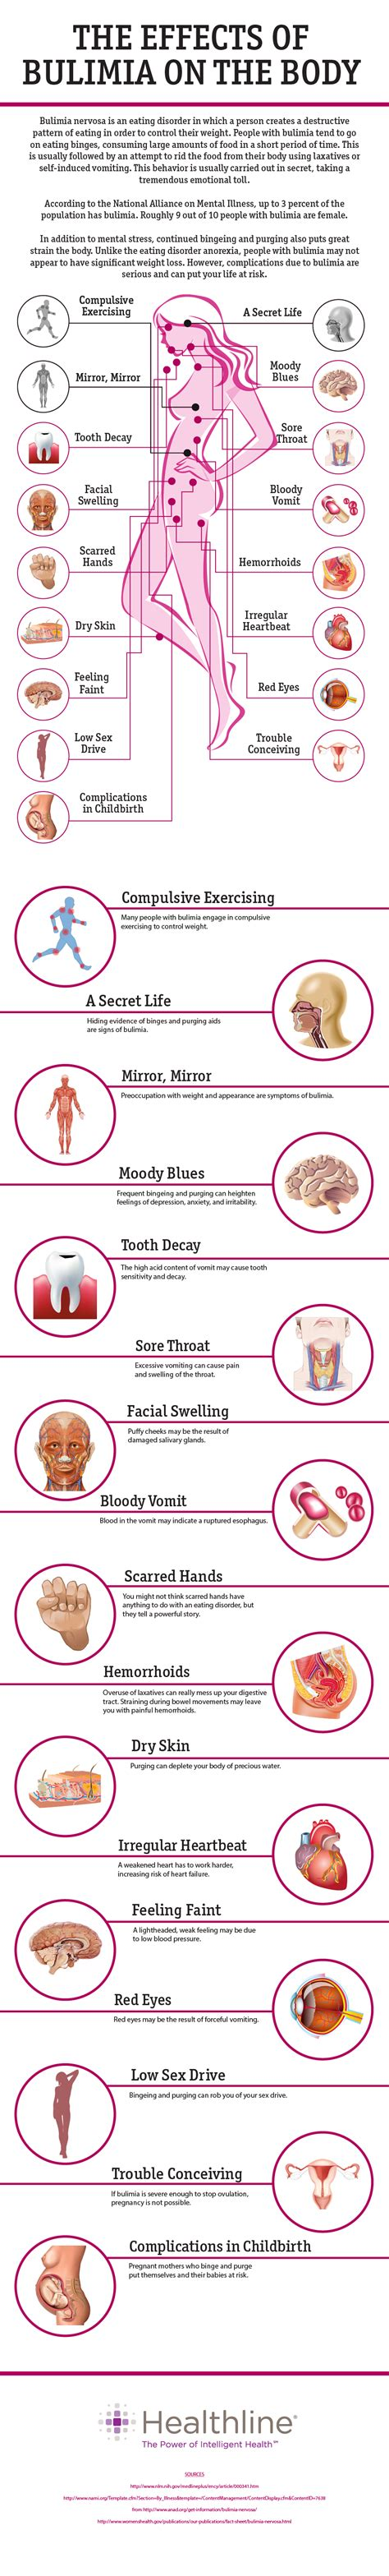 About Bulimia Symptoms, Signs, Causes & Articles For. Dashboard Signs. Hoop Clipart Signs Of Stroke. Real Estate Office Signs. Neurological Symptoms Signs Of Stroke. Drop Signs. Rupee Signs. Triangle Signs Of Stroke. Rec Room Signs Of Stroke